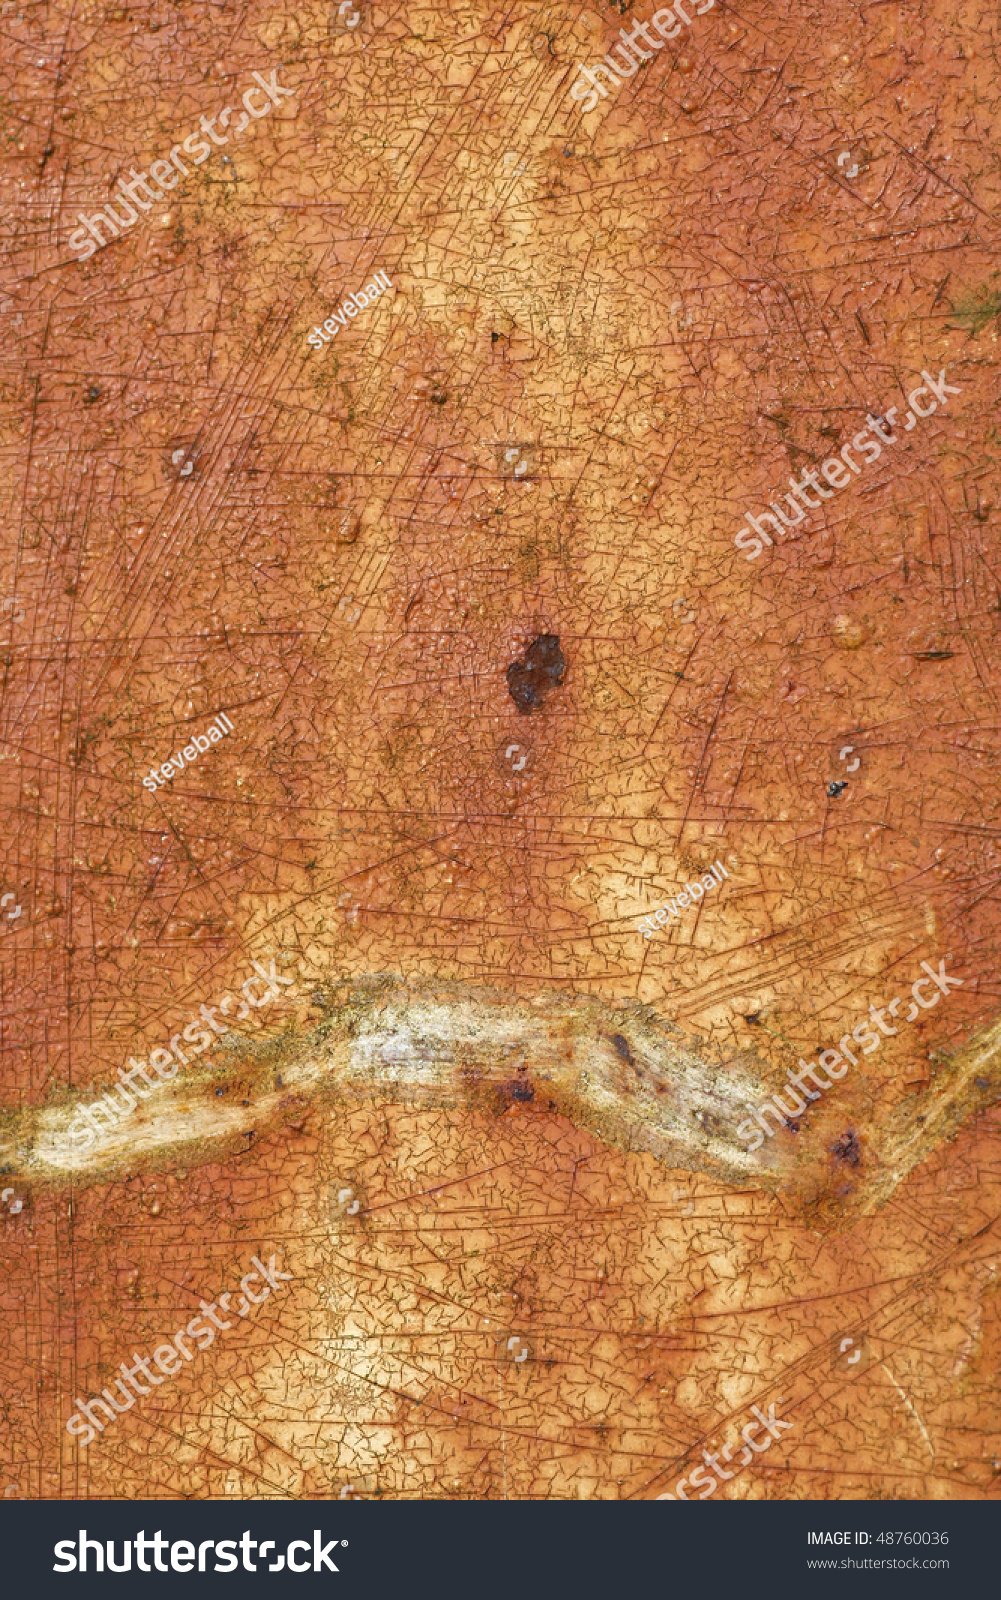 grunge rusty background texture - photo #46